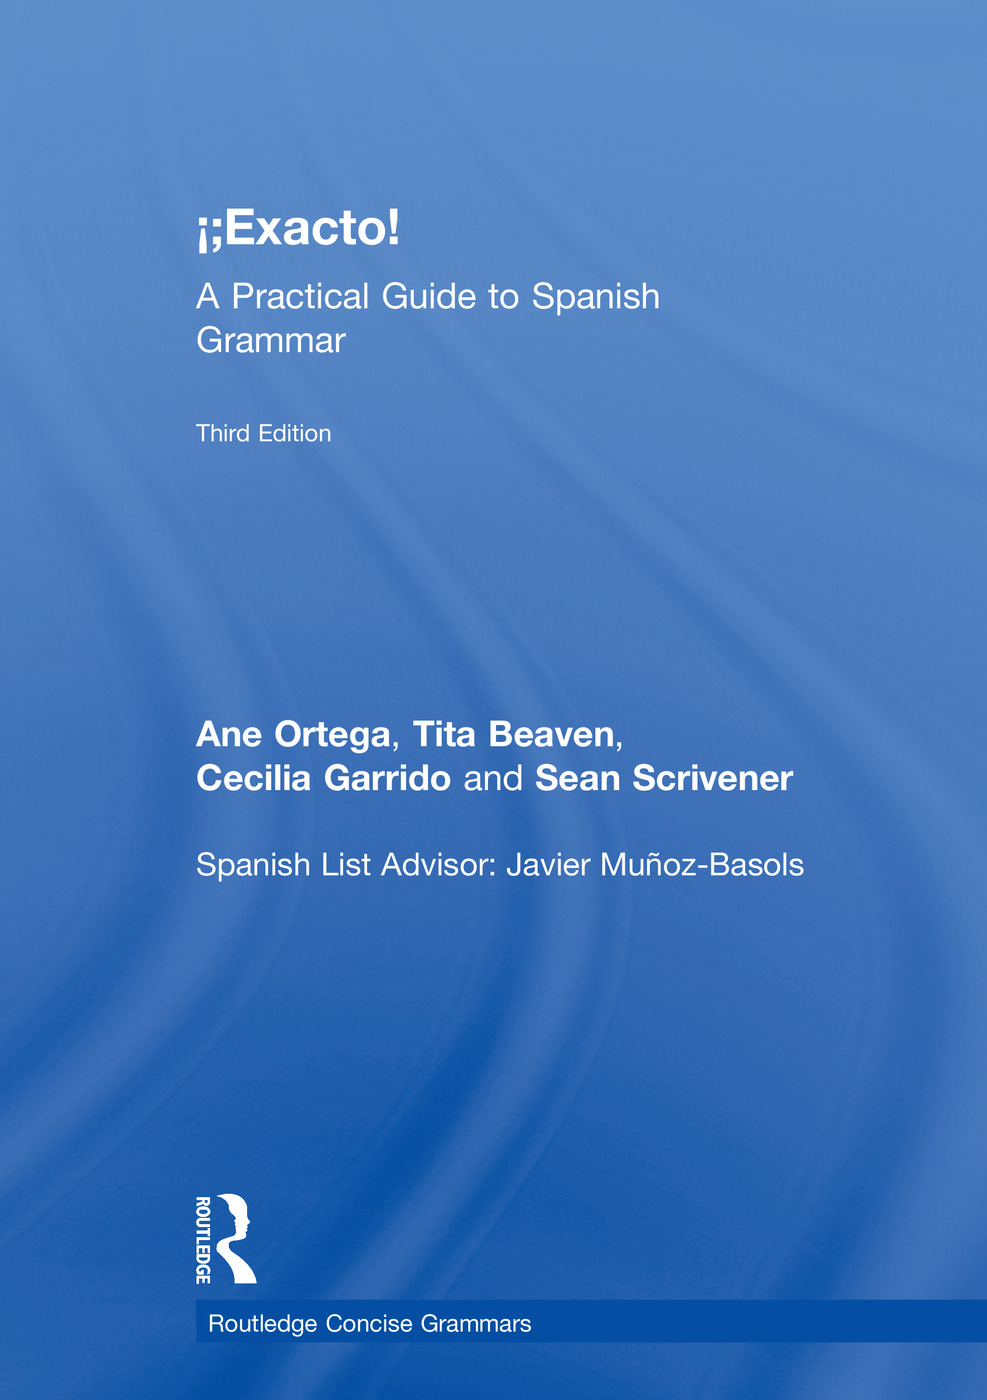 ¡Exacto!: A Practical Guide to Spanish Grammar book cover